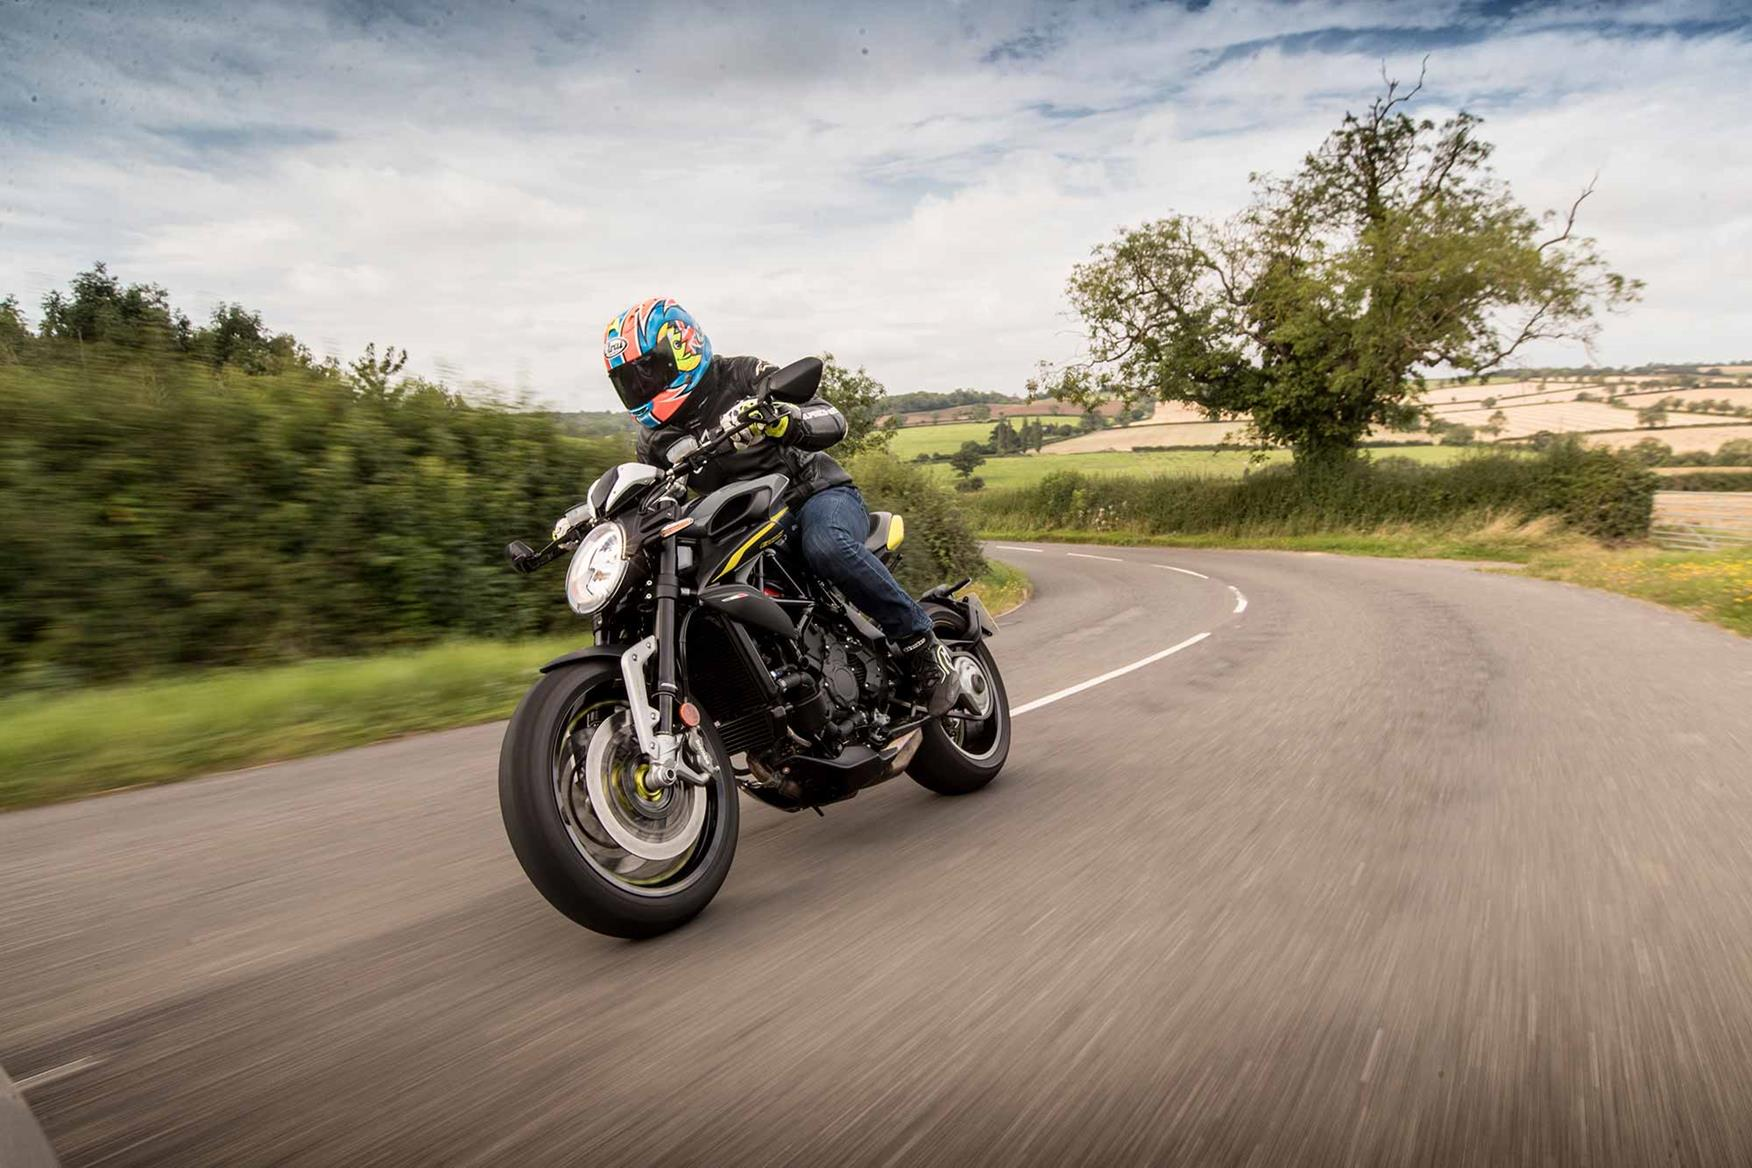 MV-AGUSTA DRAGSTER 800 RR (2019-on) Review